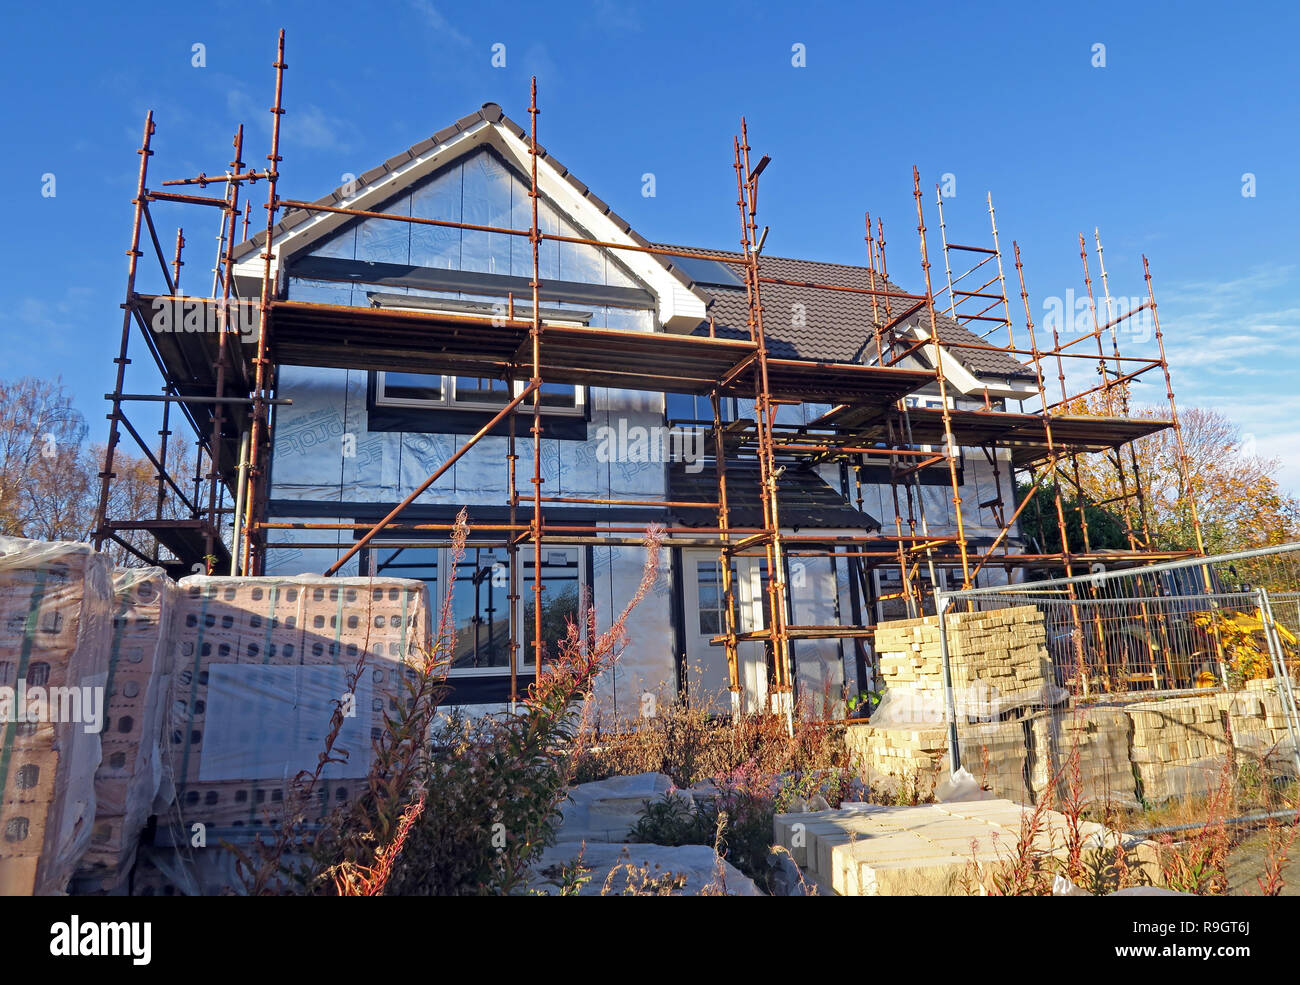 Detached House under construction, scaffolding, Eskbank, Dalkeith, Midlothian, near Edinburgh, Scotland, UK Stock Photo